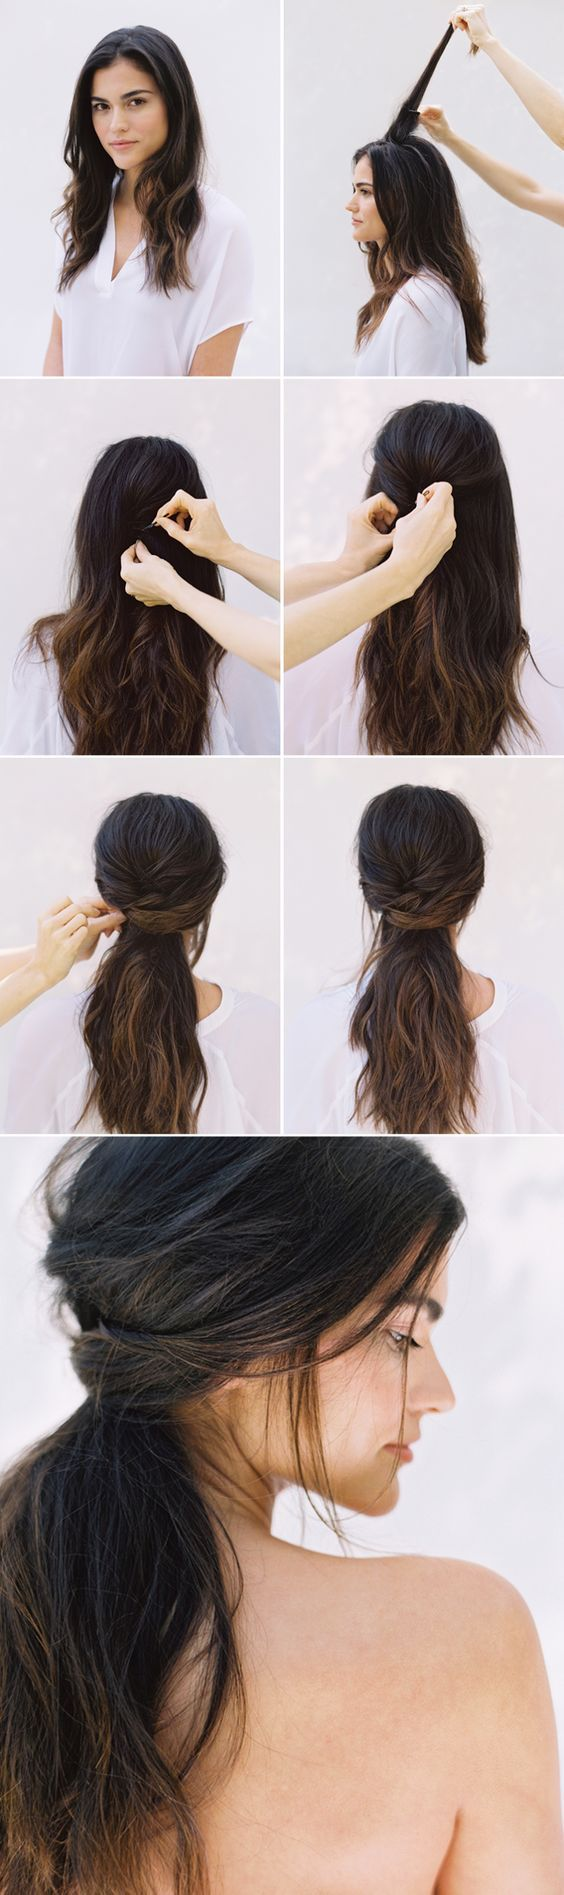 #DIY Half Up Half Down #Wedding #Hair - this with some boho braids tucked in there!